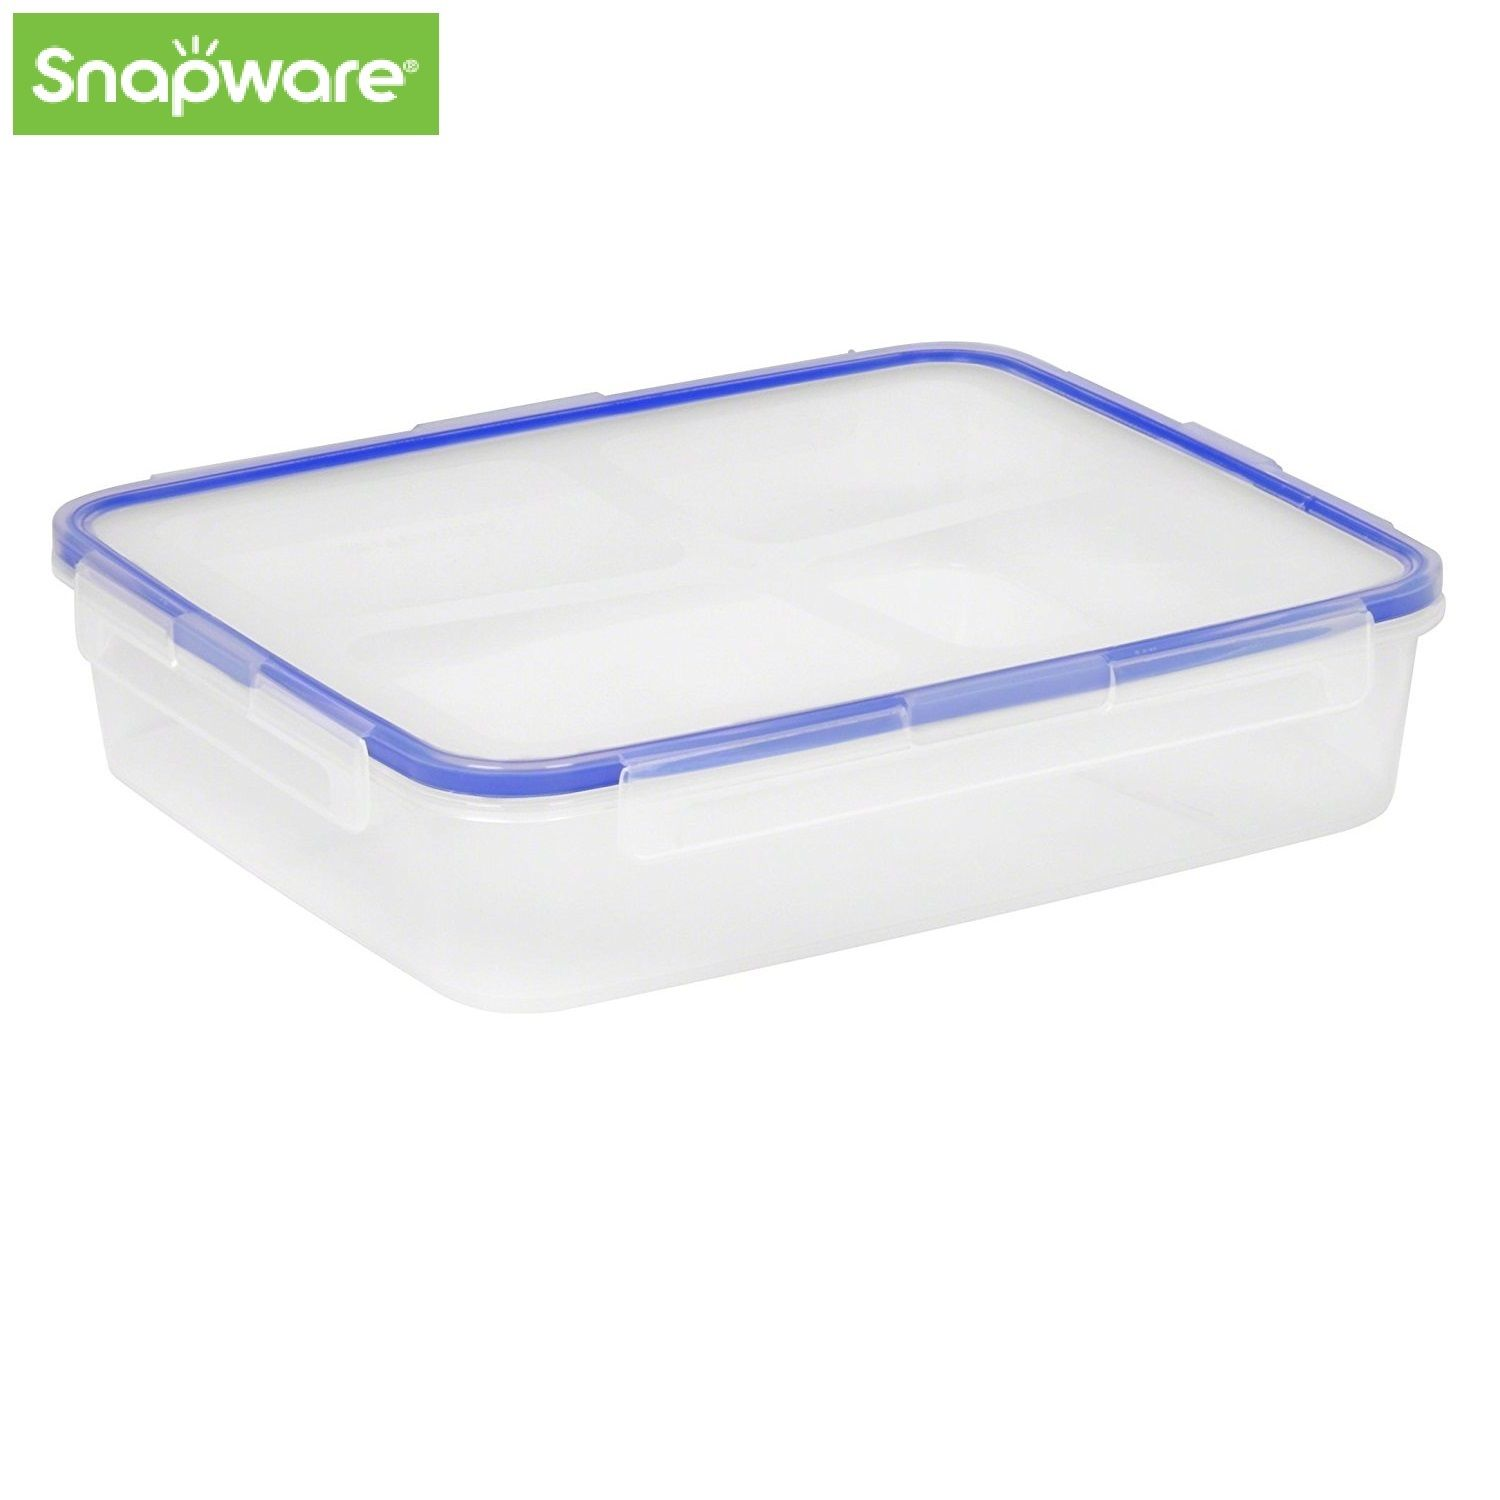 Snapware 8-Cup Airtight Rectangle Food Storage Container, Plastic Large, 1098434 1